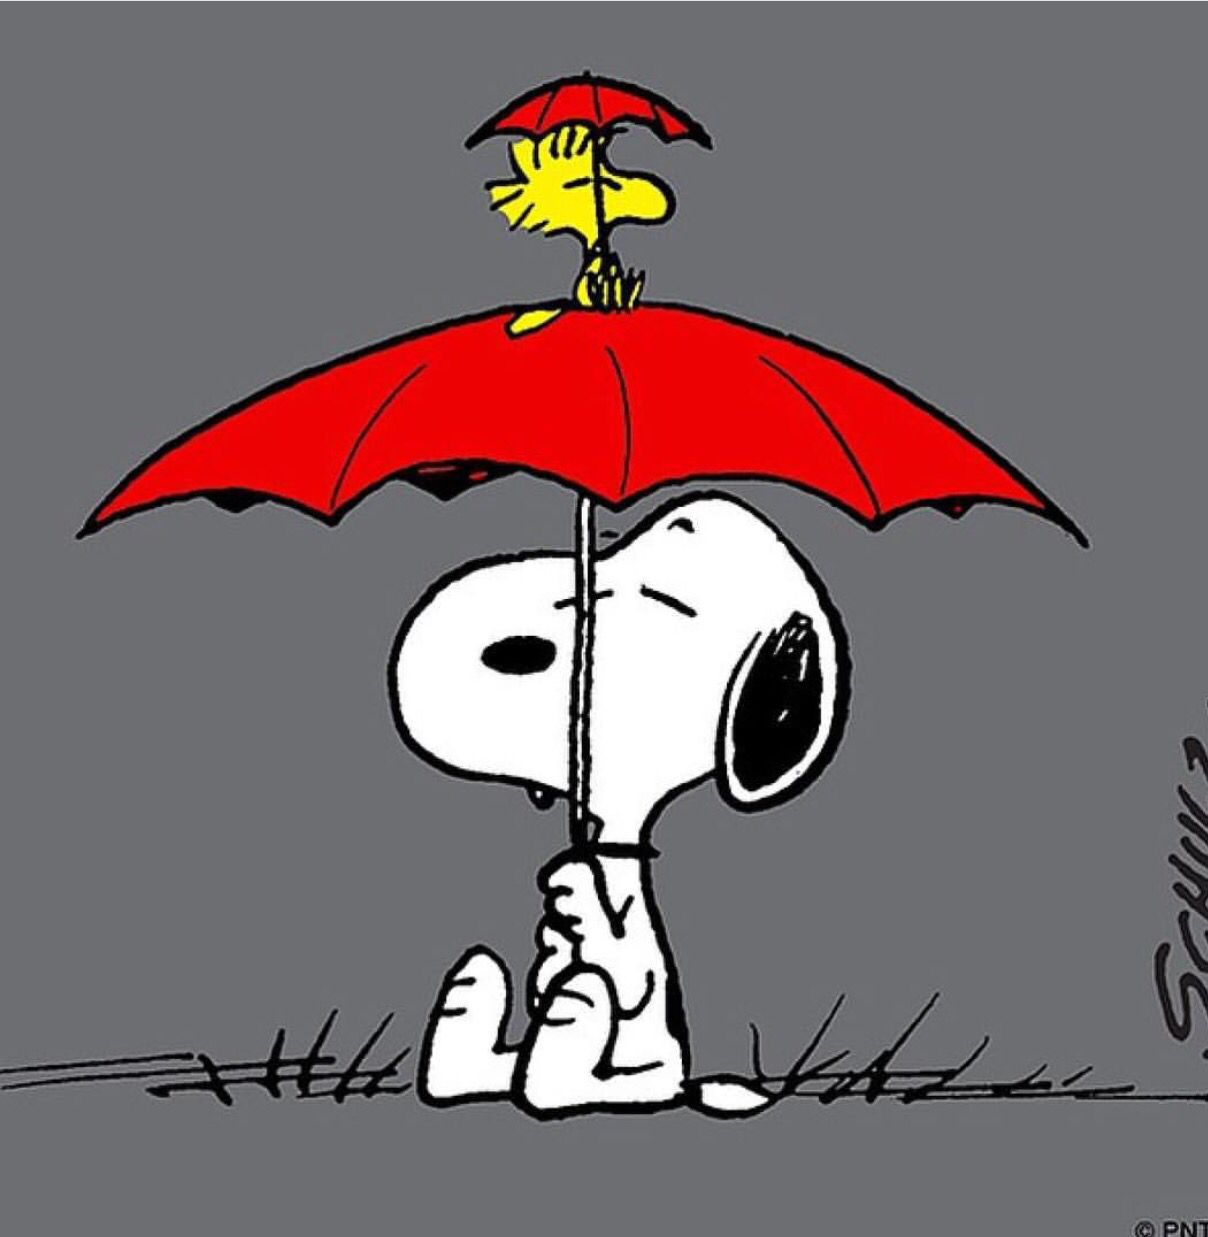 Snoopy Snoopy love, Snoopy and woodstock, Snoopy funny